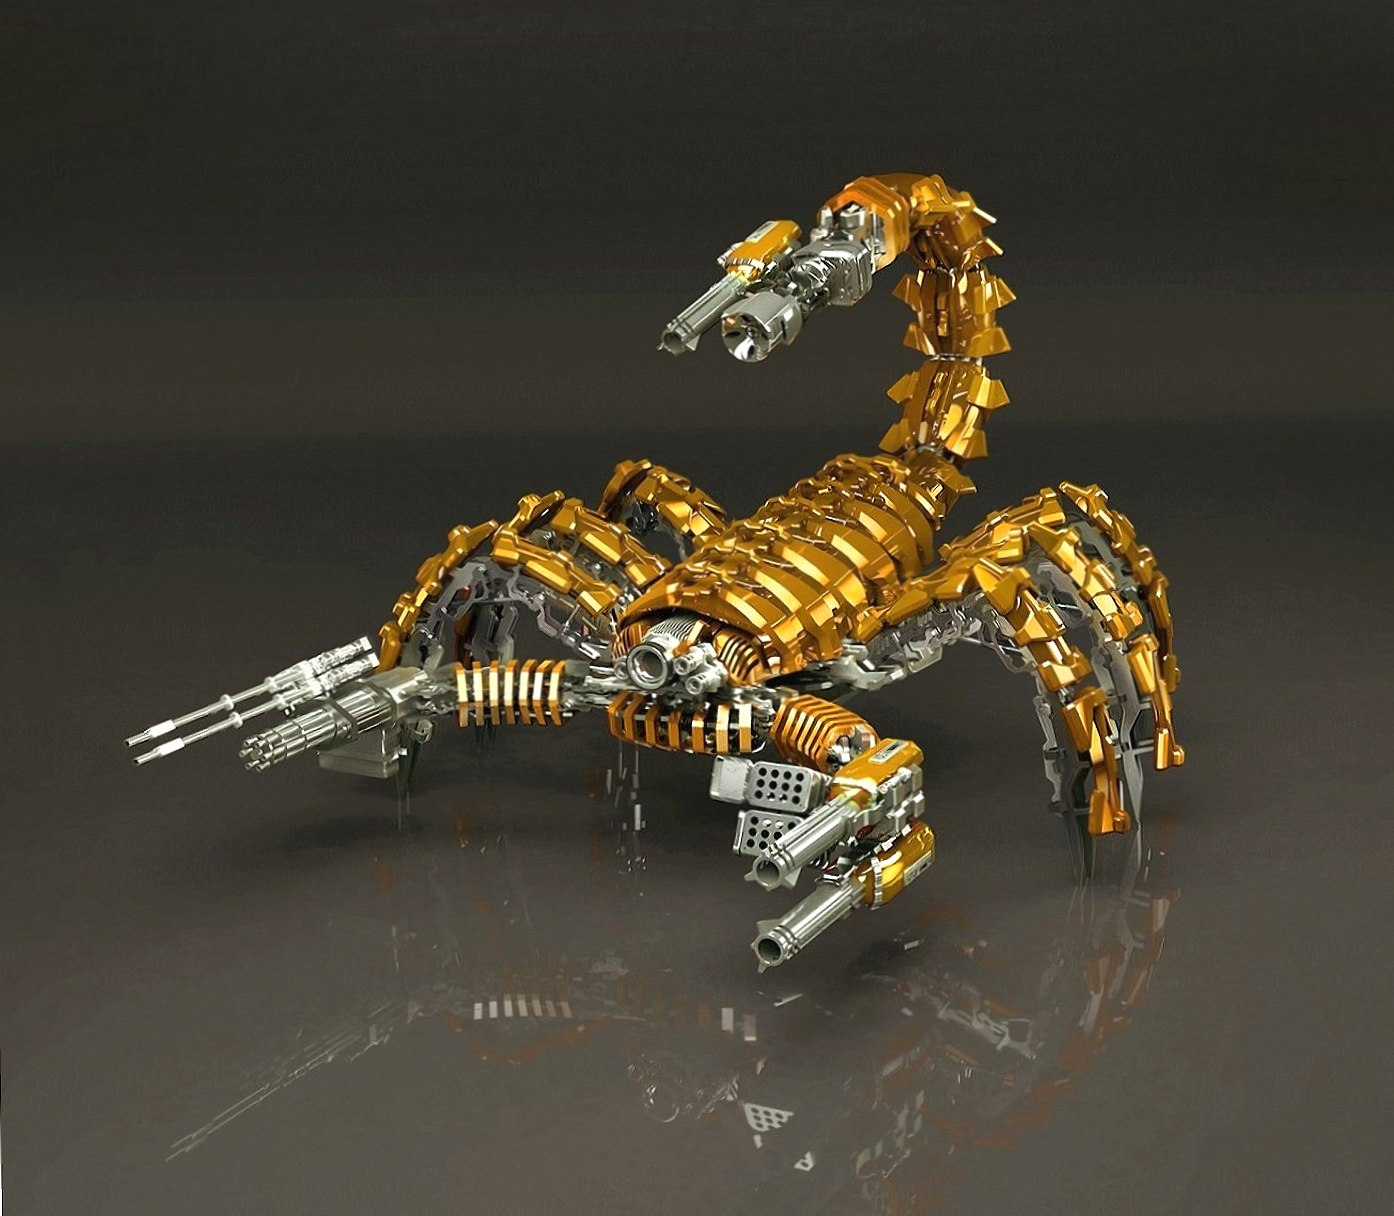 Robotic Scorpion wallpapers HD quality